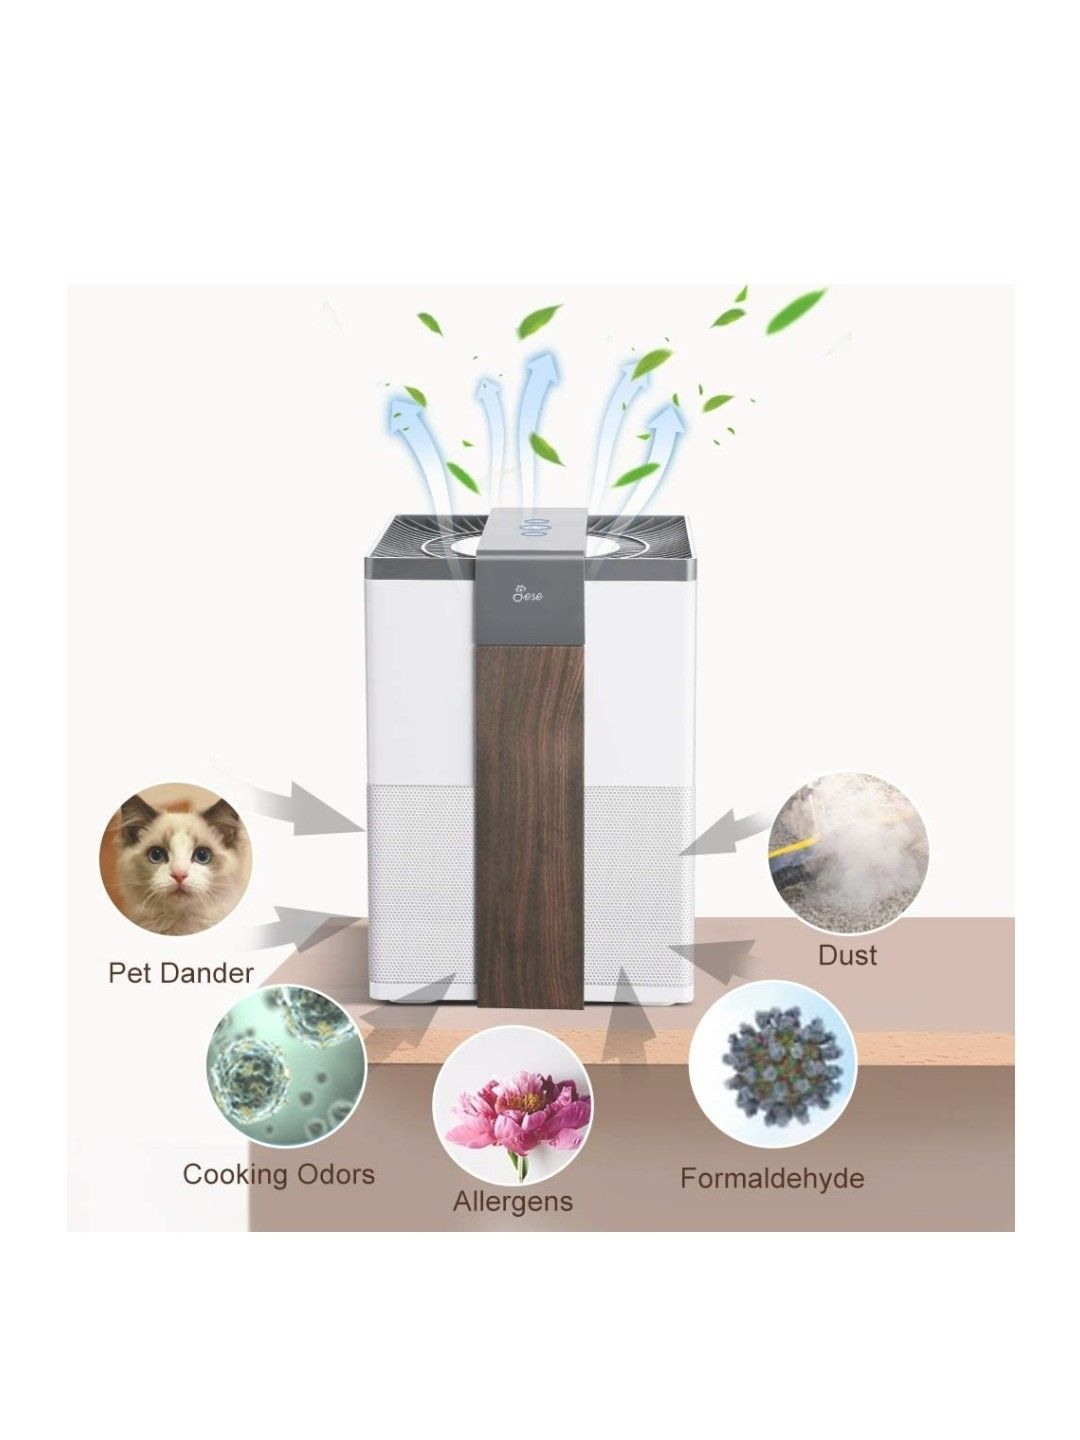 Jese Air Purifier,3 Stage Filtration System with True HEPA Air Filter for Home Allergies, Air Cleaner Remove Formaldehyde with Charcoal Cloth Filter